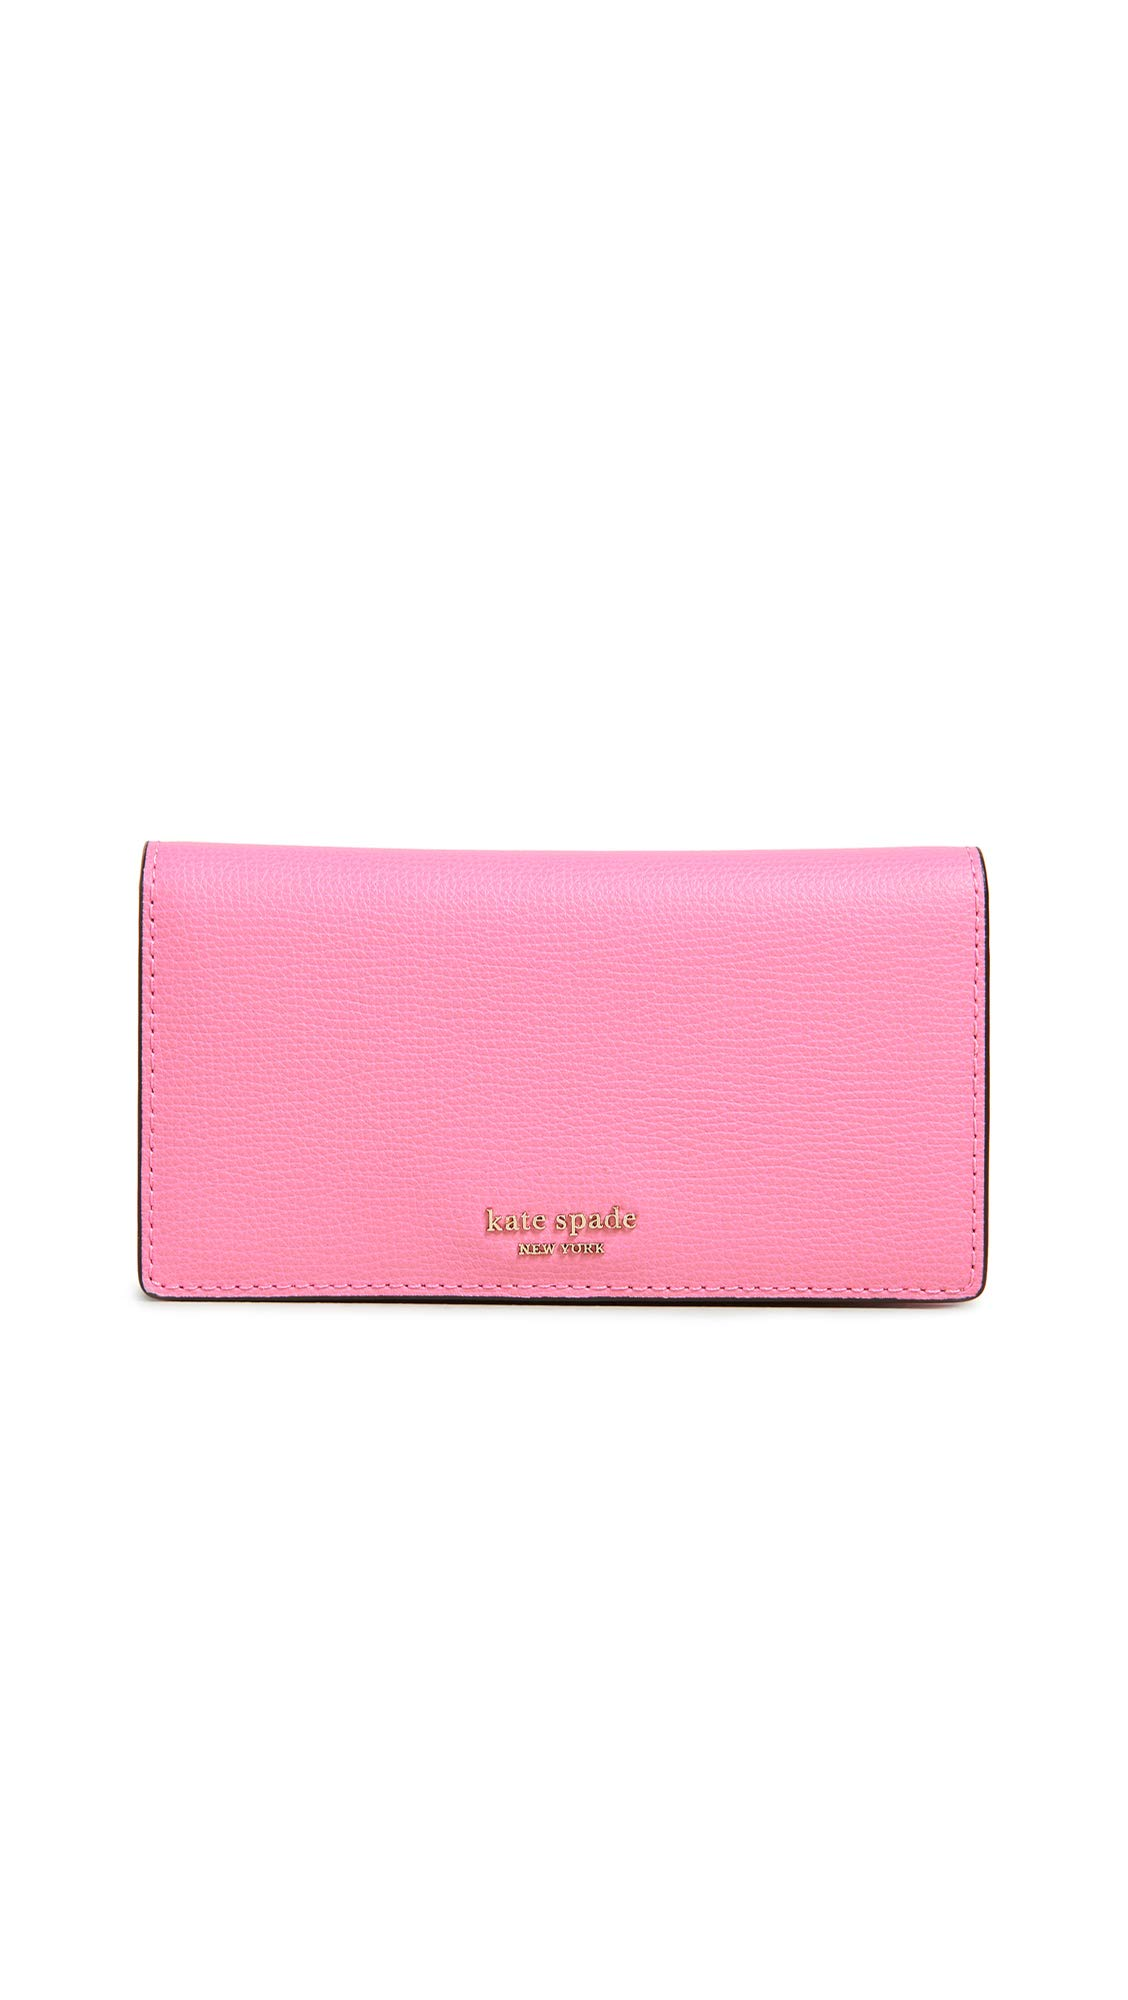 Kate Spade New York Women's Sylvia Medium Bifold With Card Holder, Hibiscus Tea, Pink, One Size by Kate Spade New York